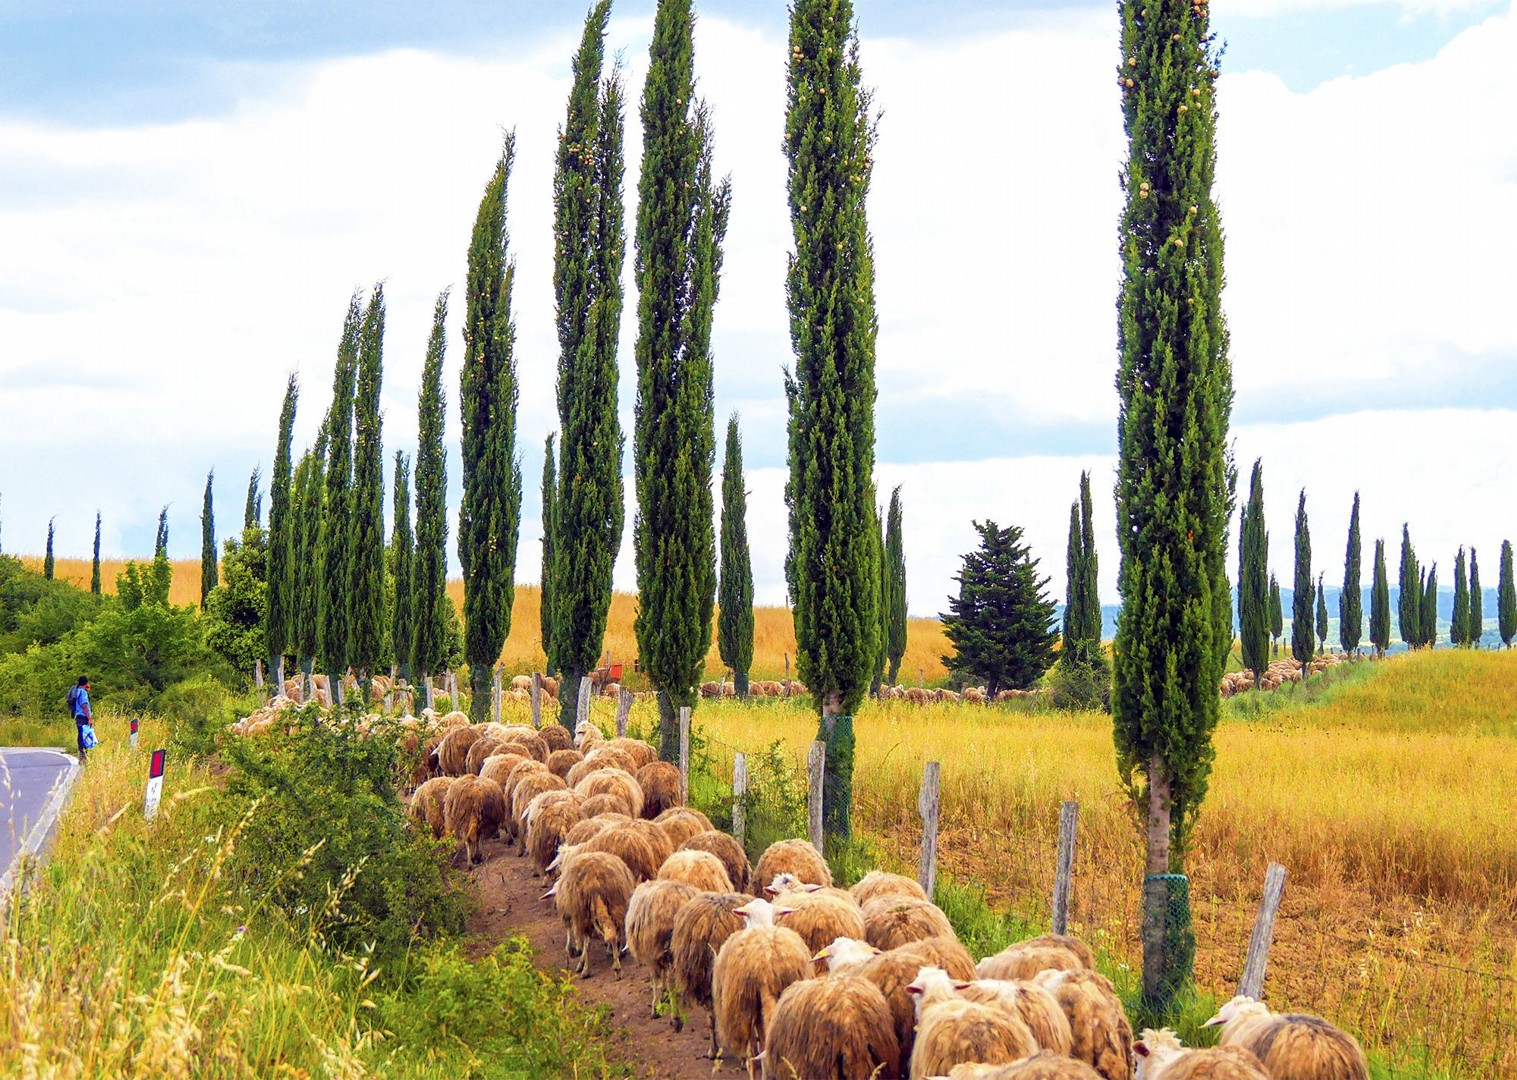 farms-and-cypress-trees-regional-life-culture-cycling-holiday-saddle-skeaddle.jpg - Italy - Classic Tuscany - Self-Guided Leisure Cycling Holiday - Italia Leisure and Family Cycling